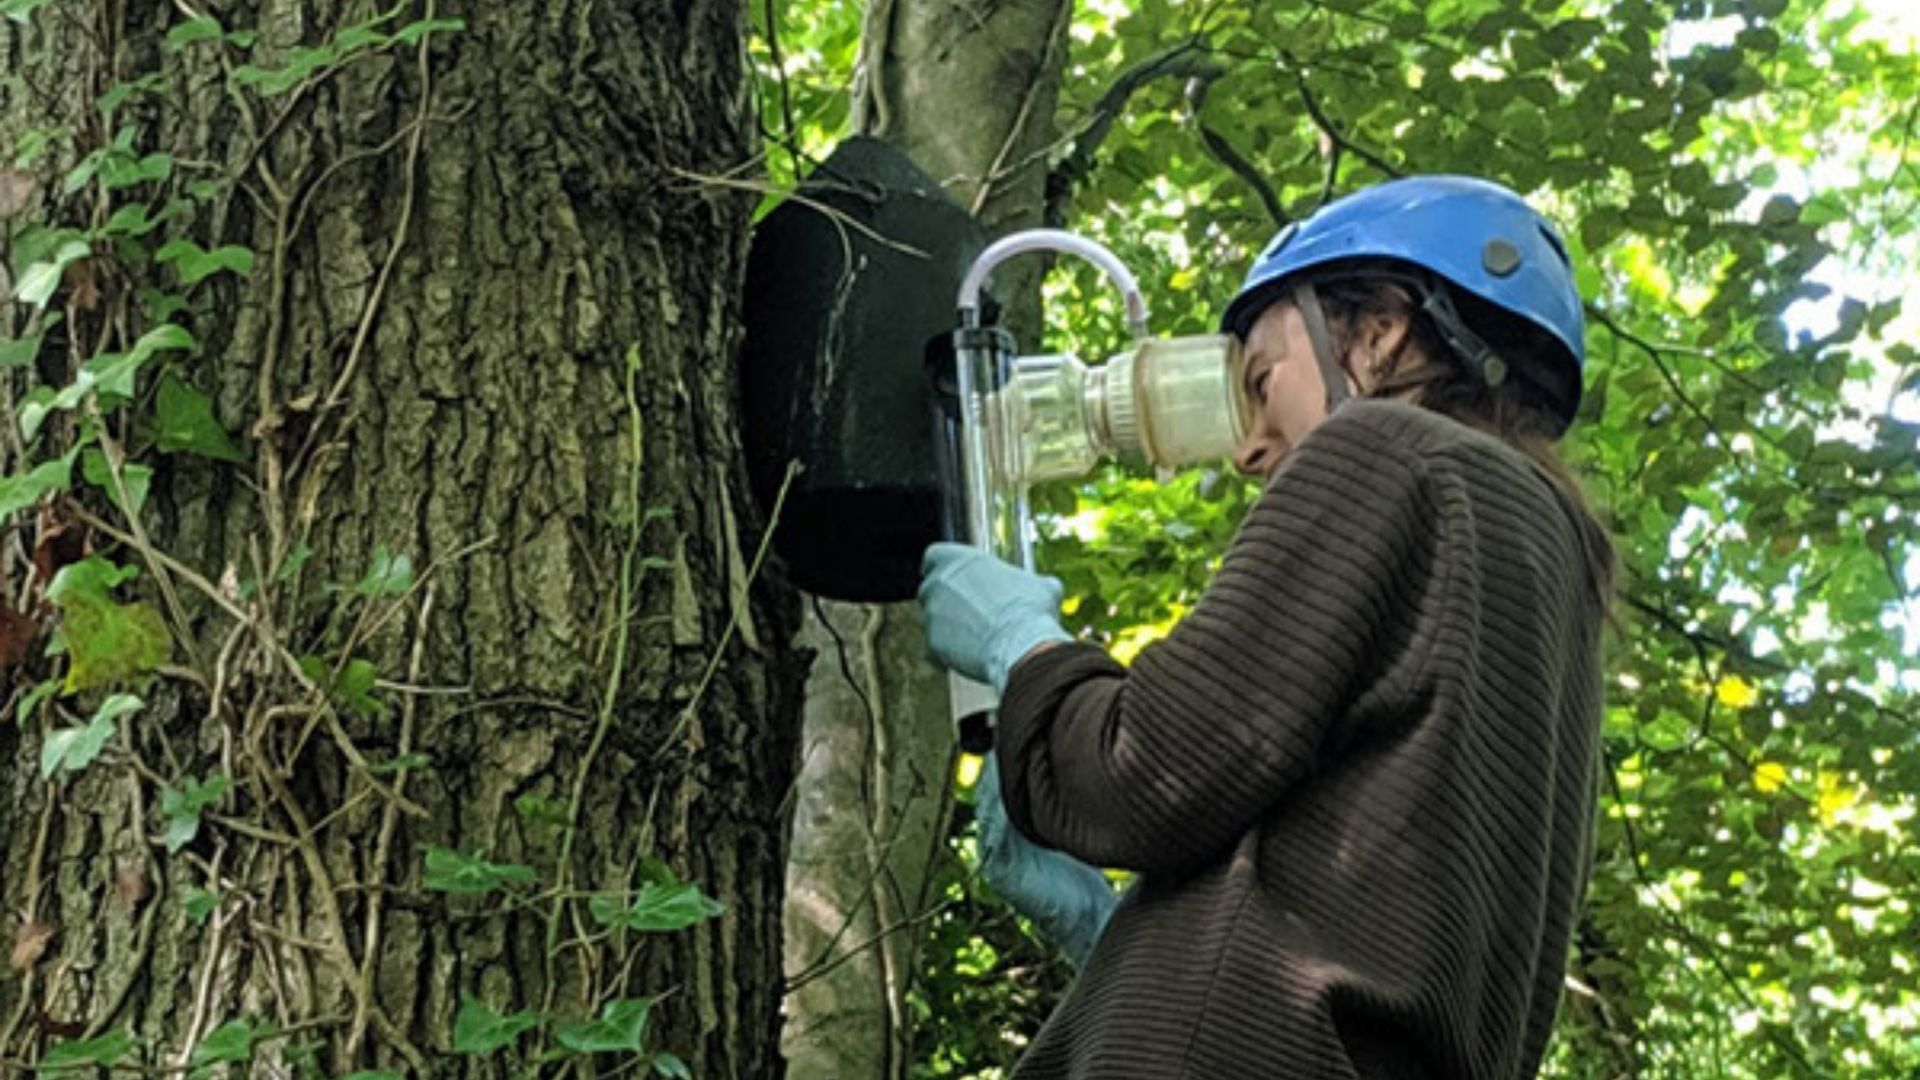 Woman in blue helmet climbing tree and using device to monitor animal habitat